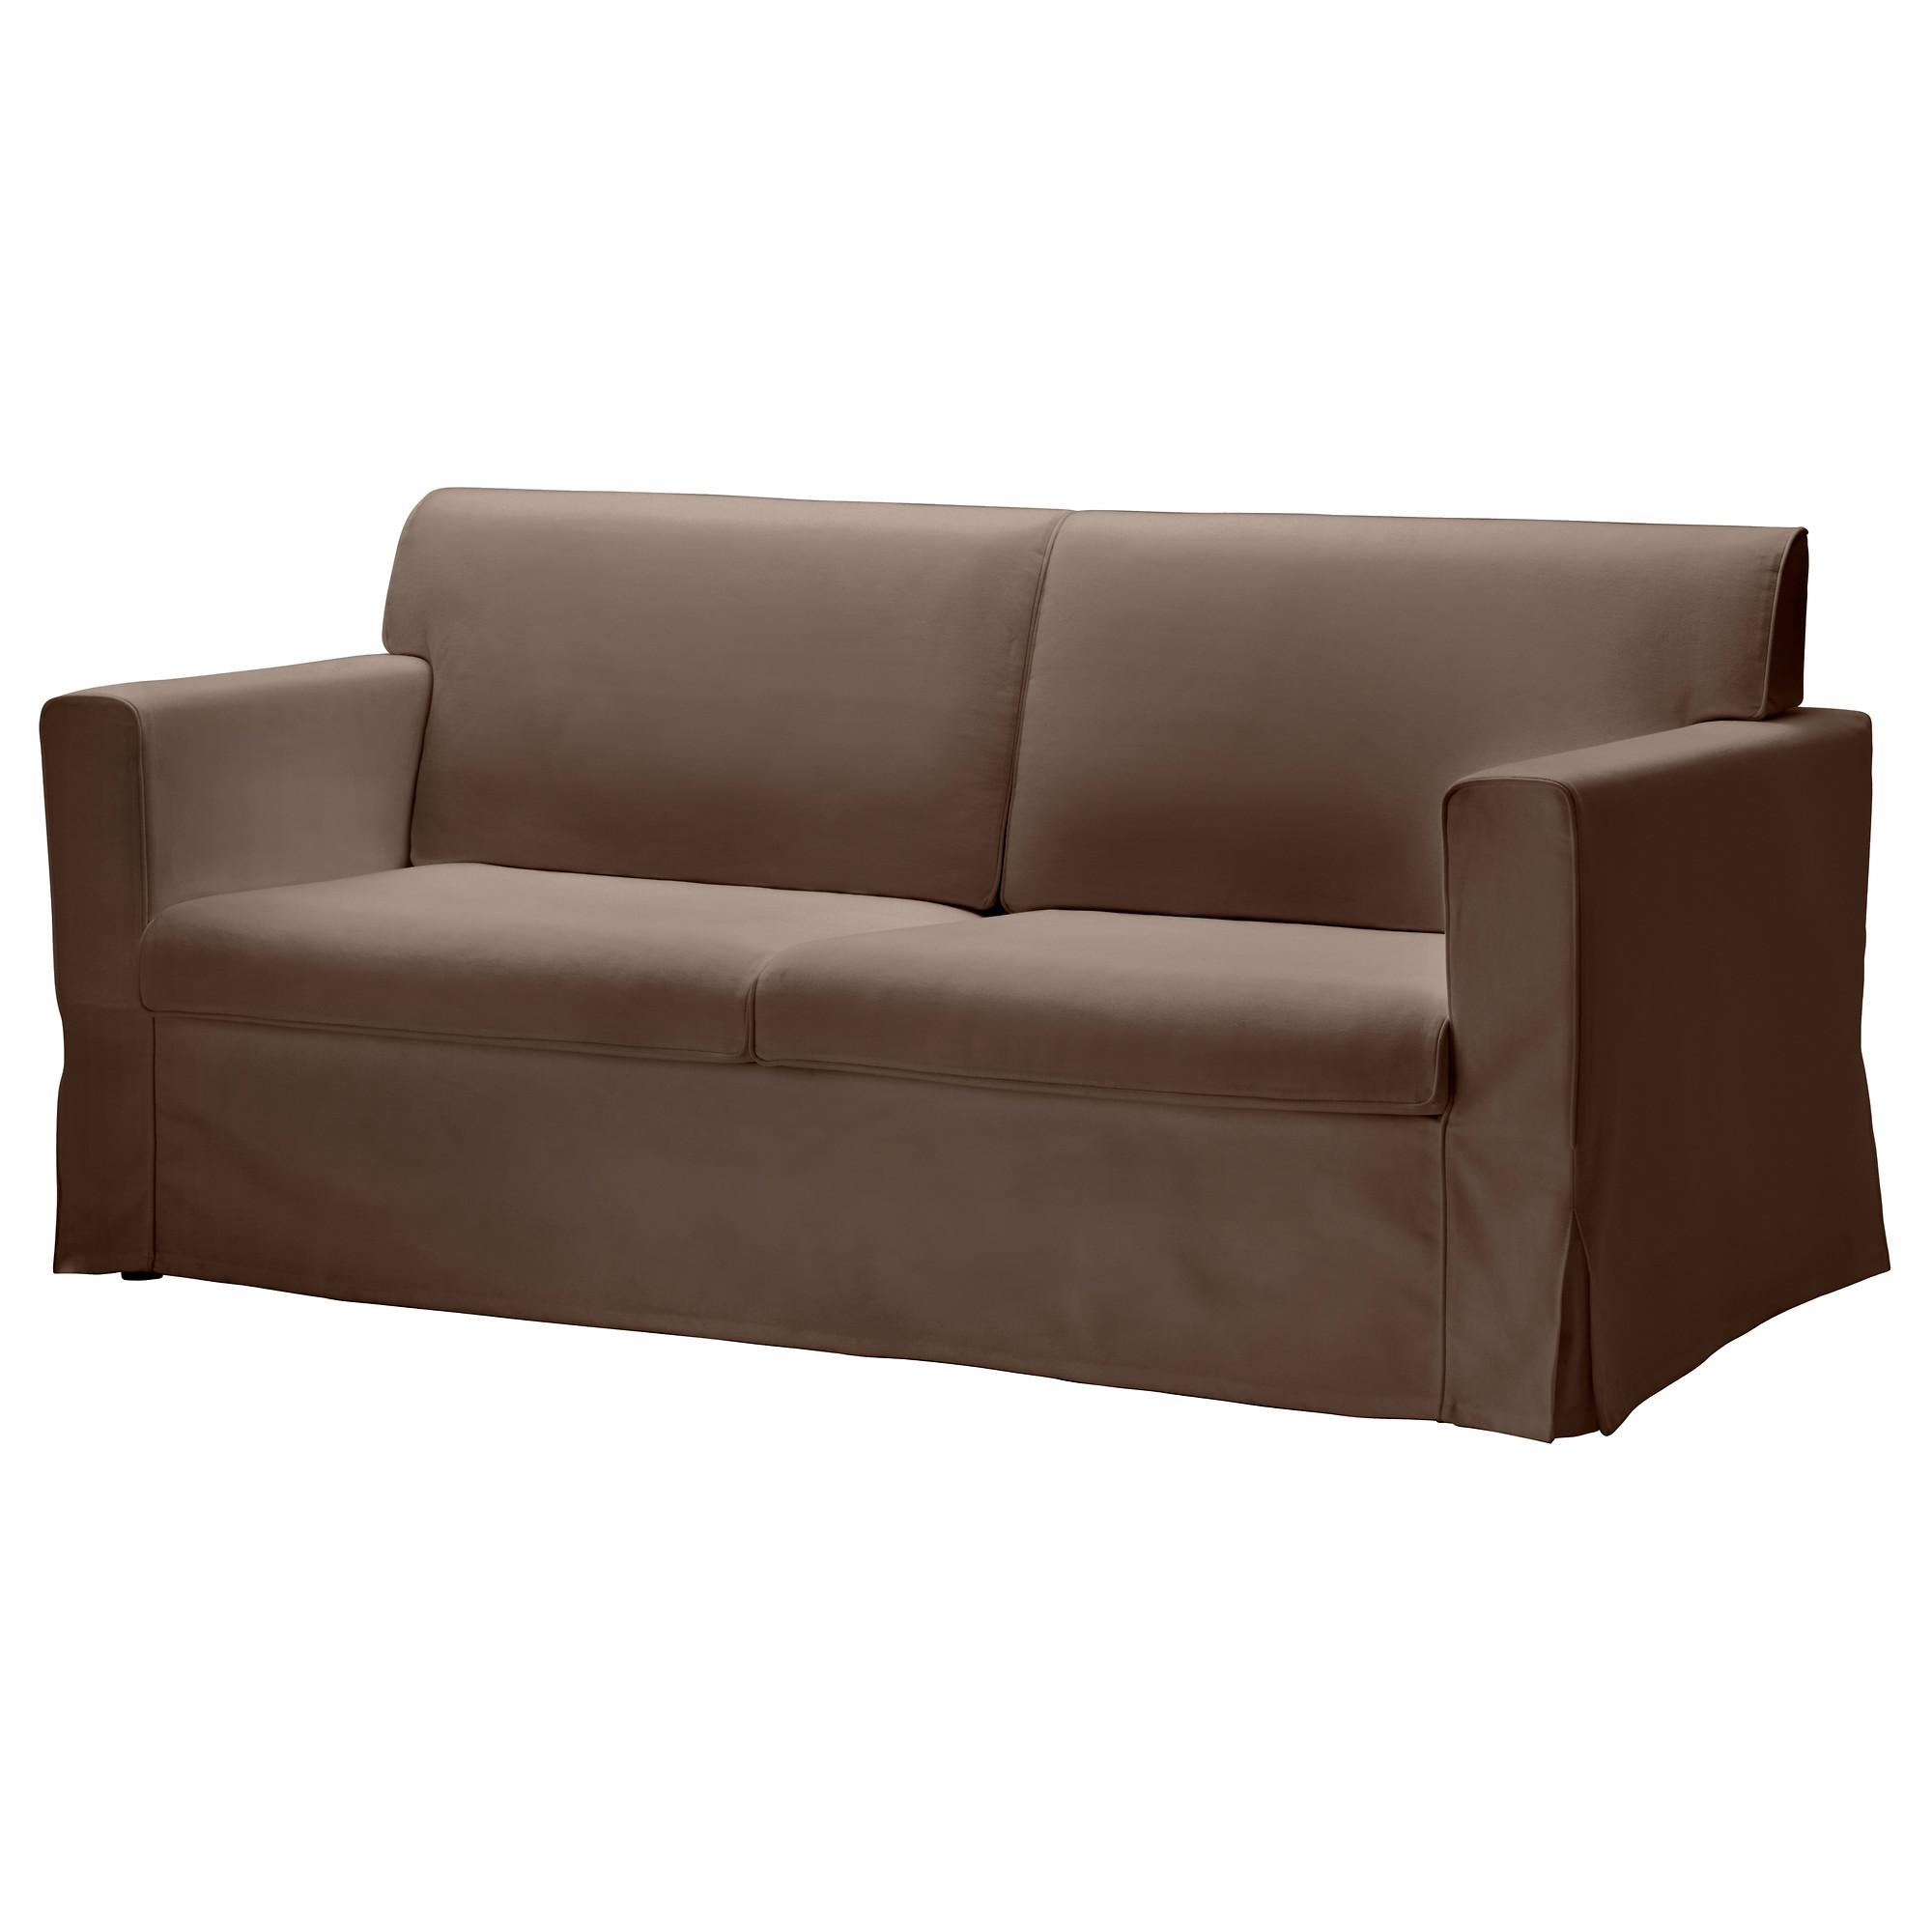 Simple sofas turkish sofas oversized sofa sets by for Couch und sofa